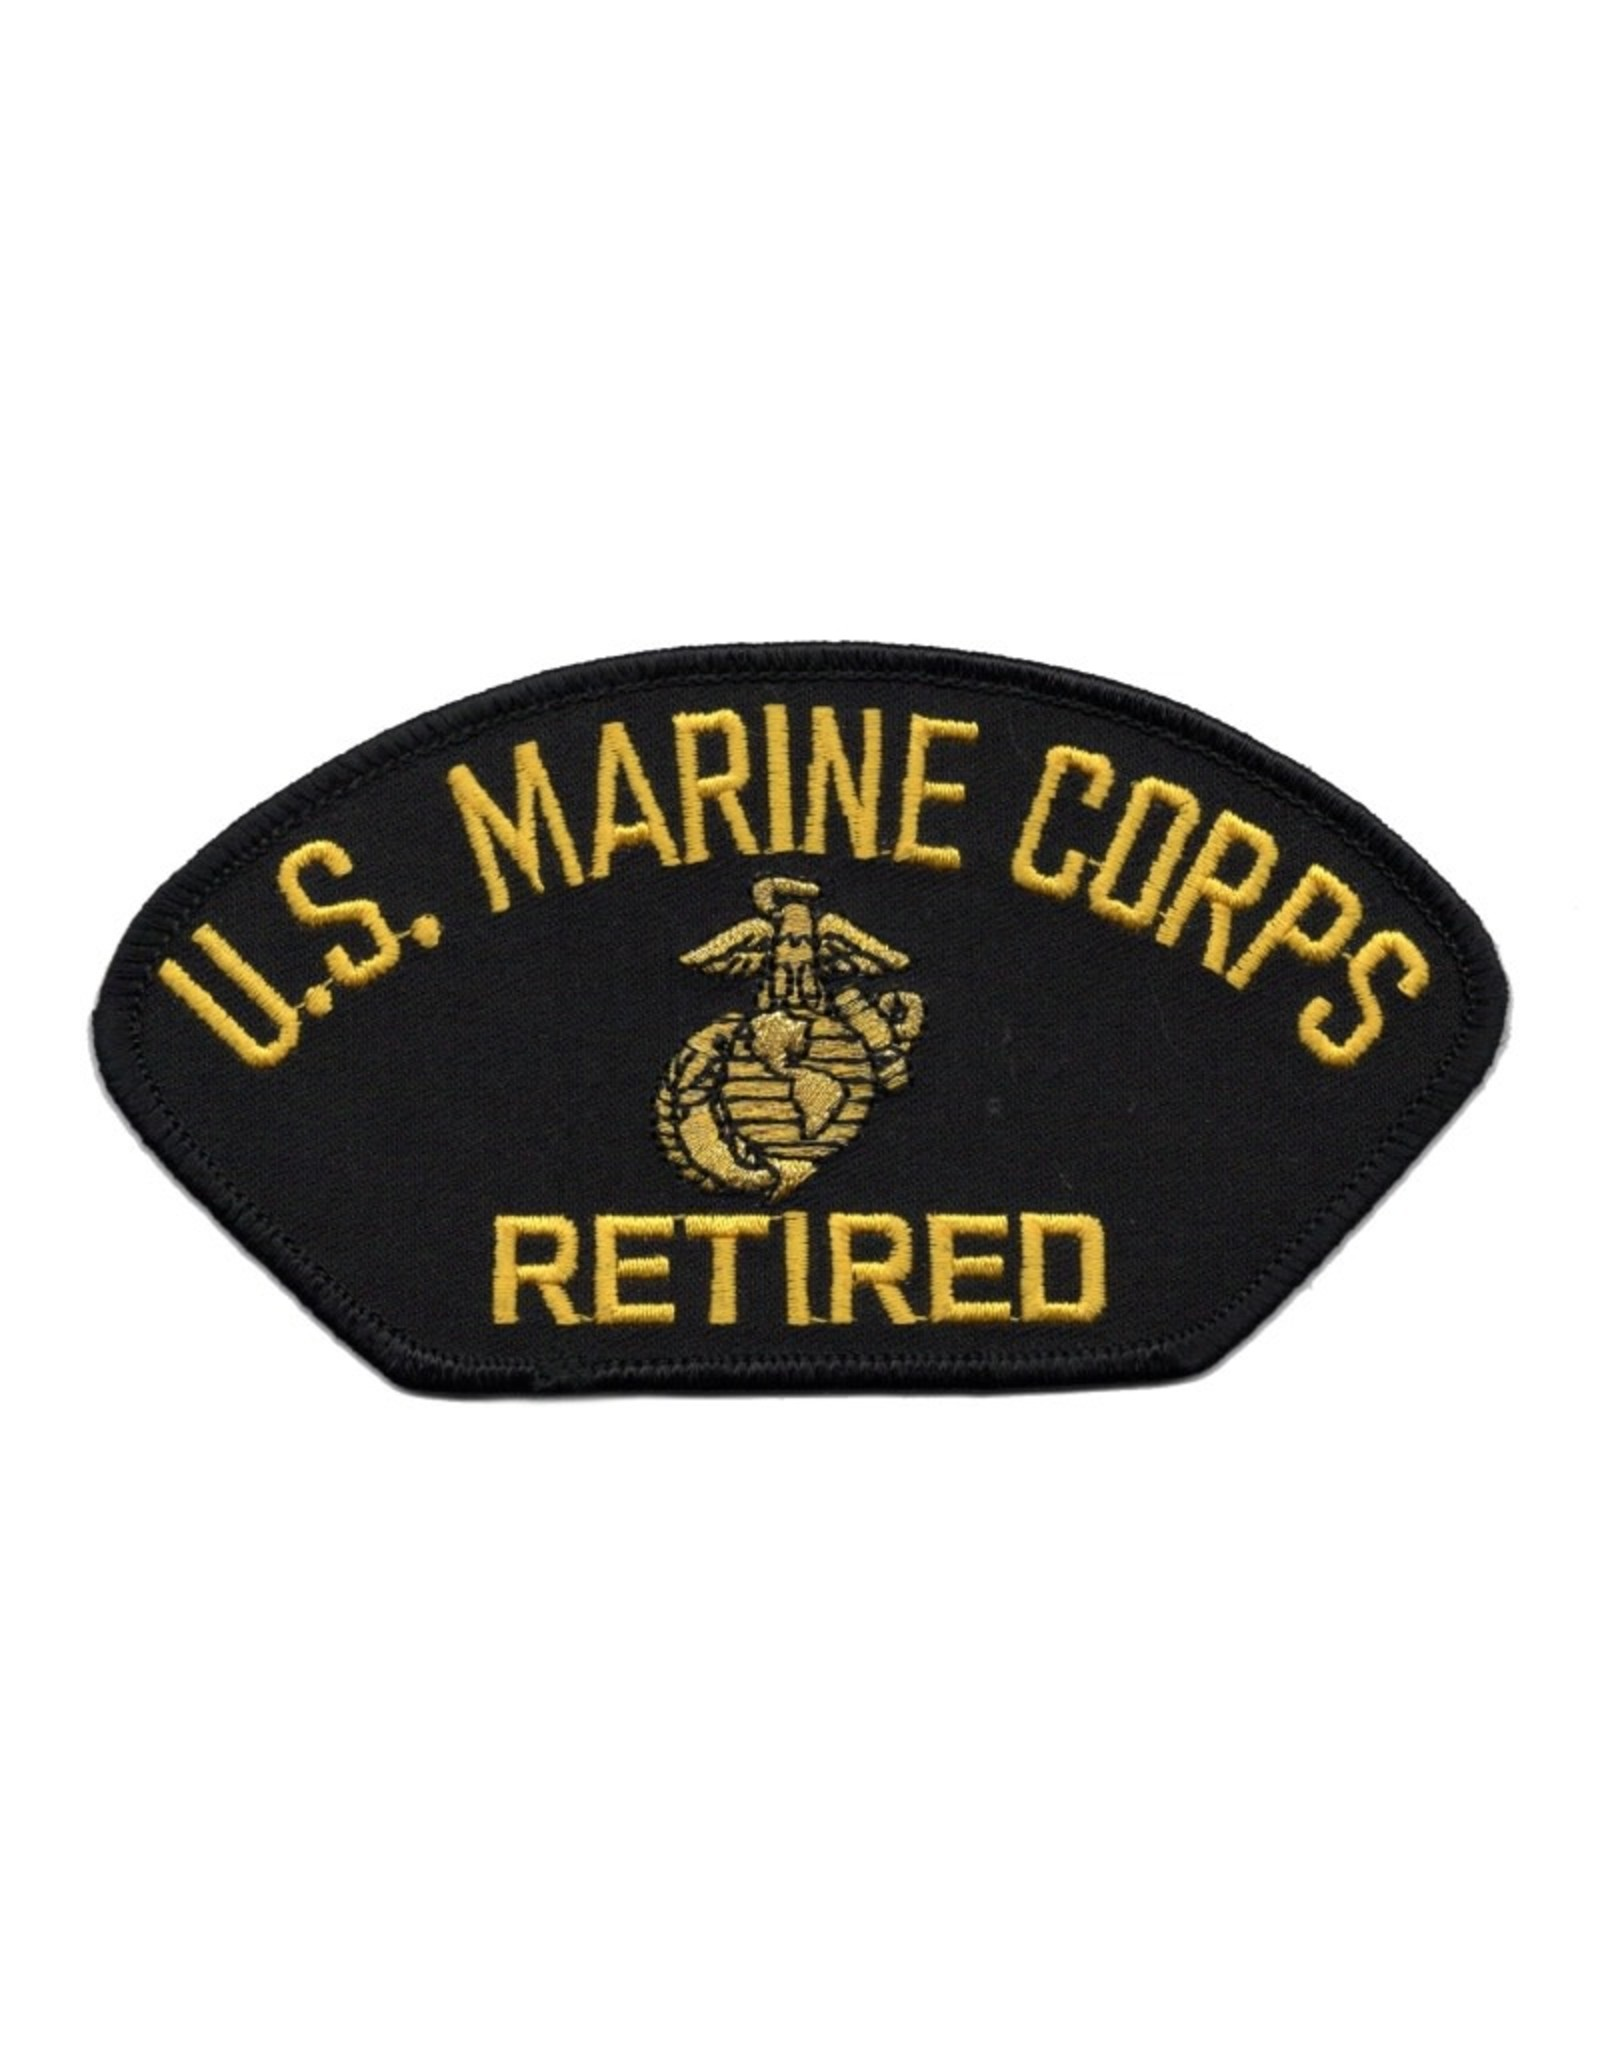 MidMil Embroidered Marine Corps Retired Patch with Emblem Black